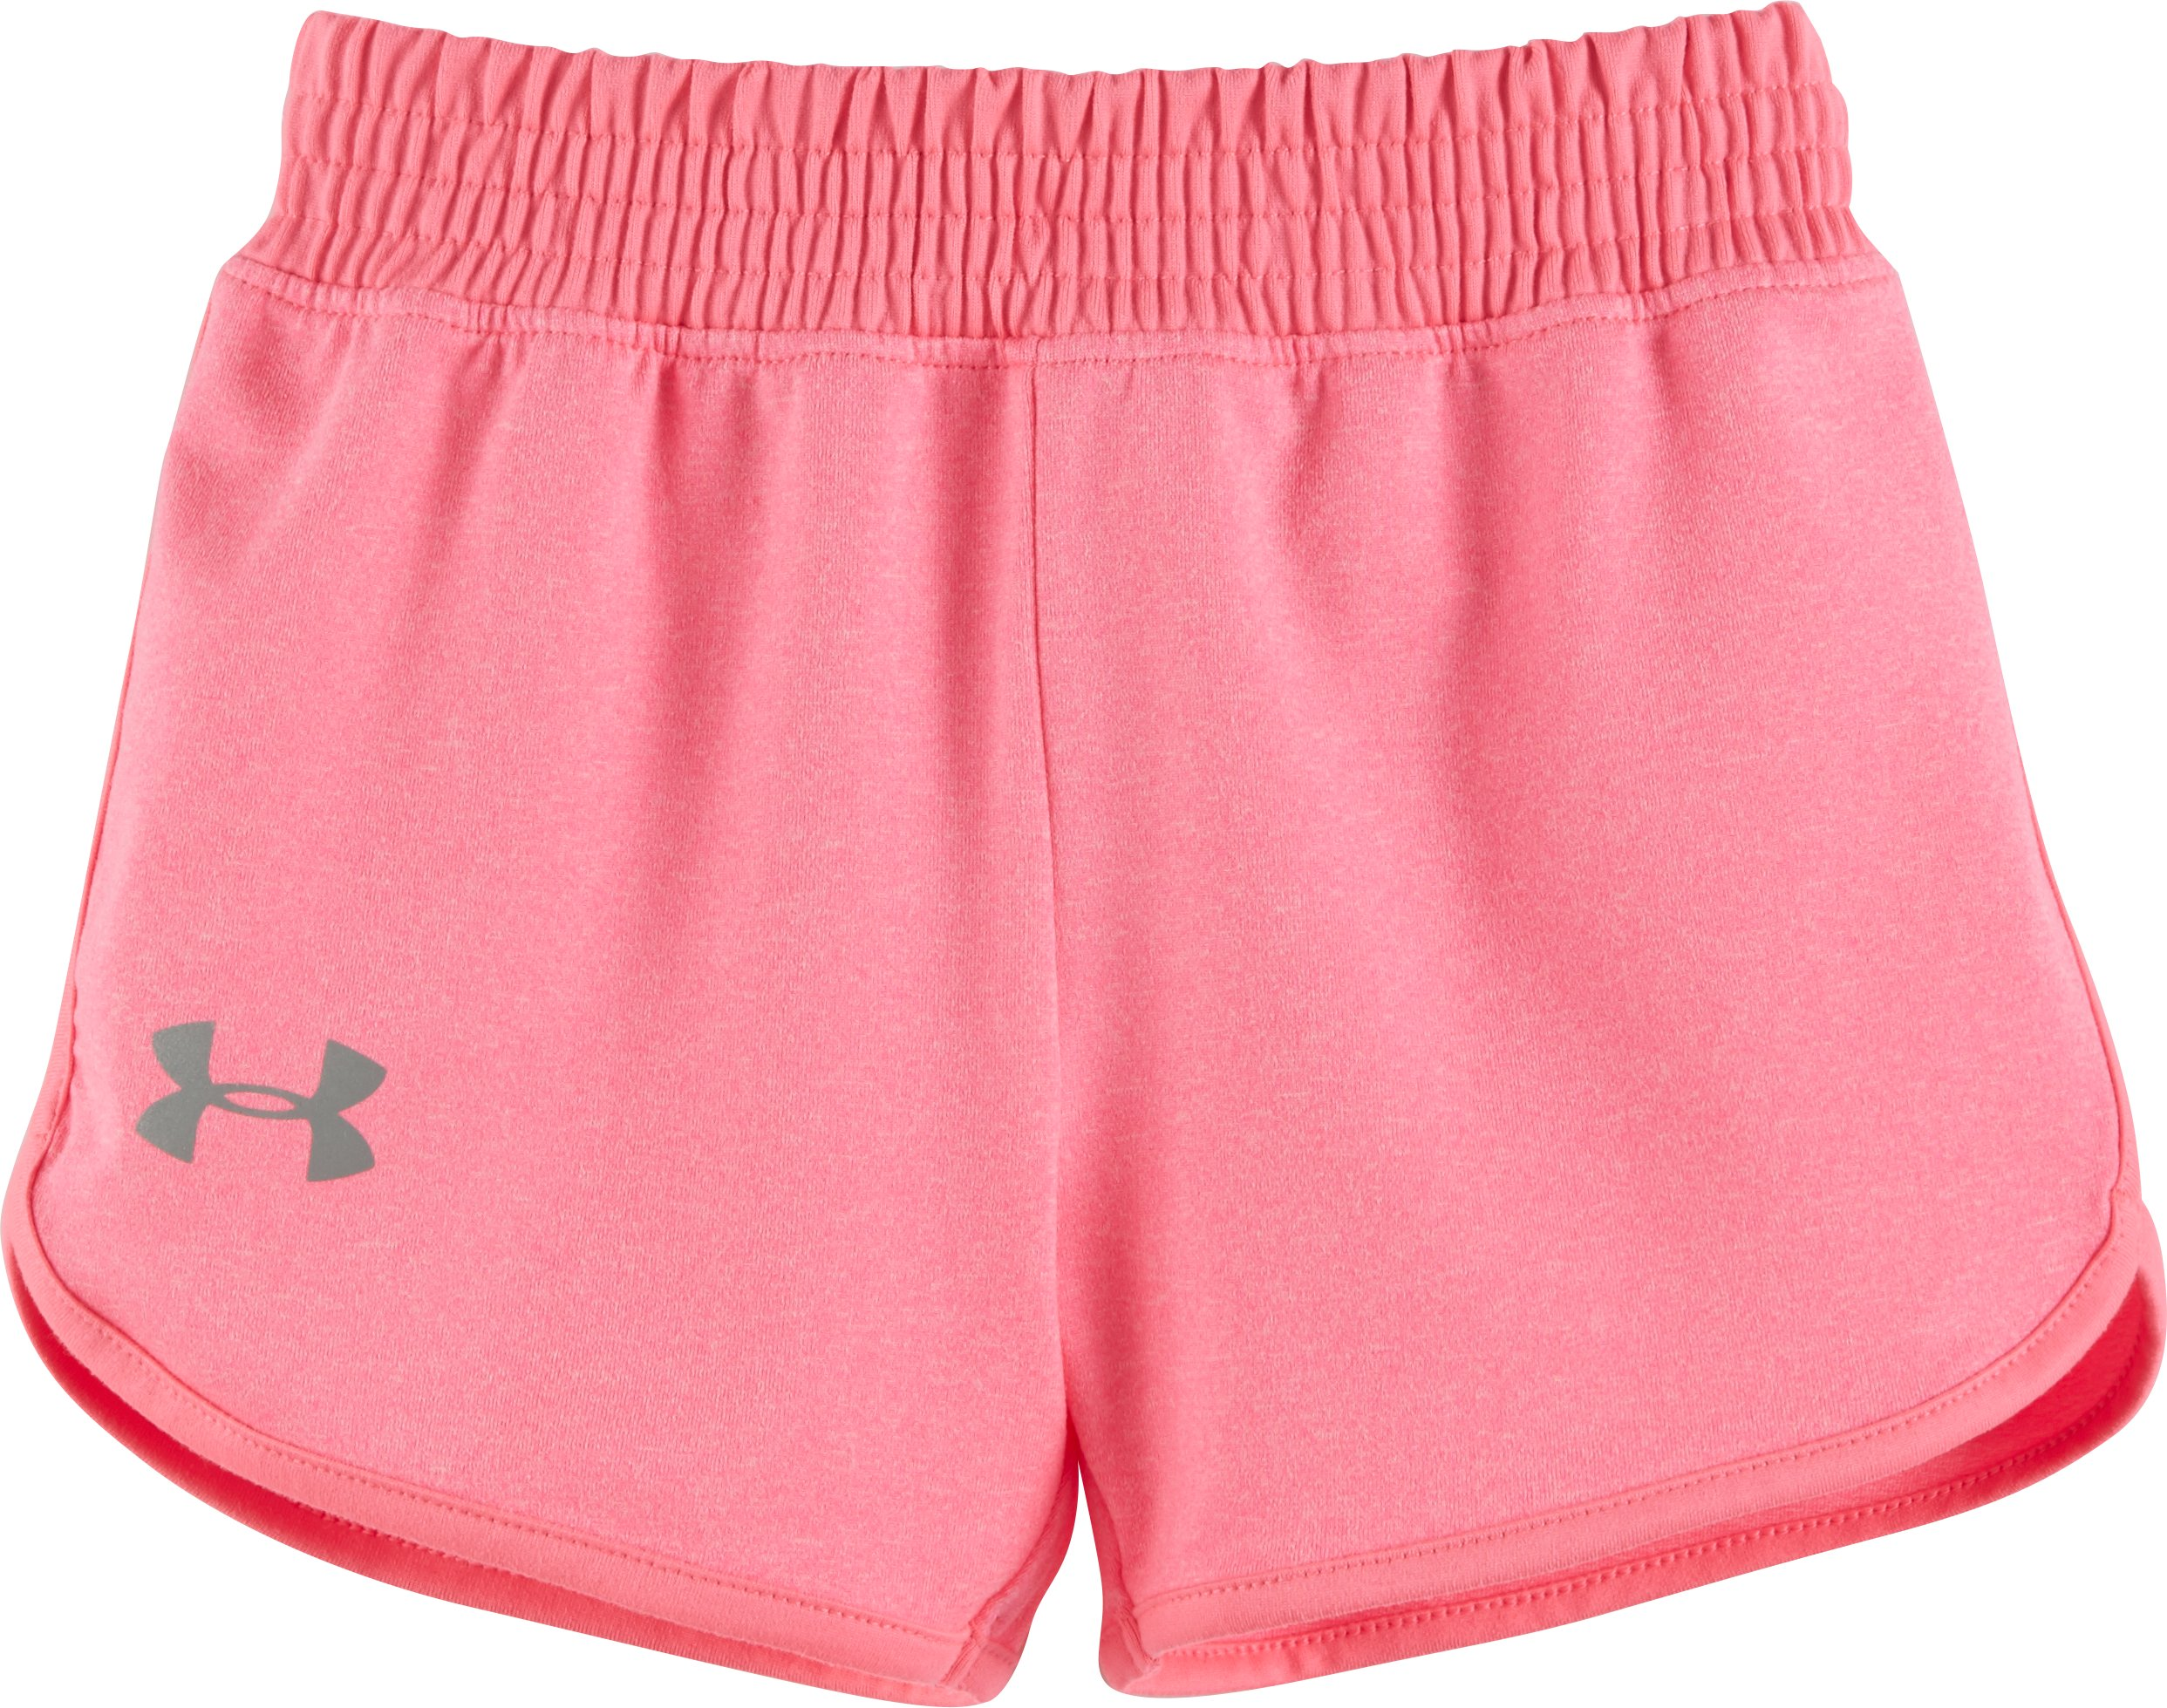 Girls' Toddler UA Record Breaker Shorts, PINK PUNK